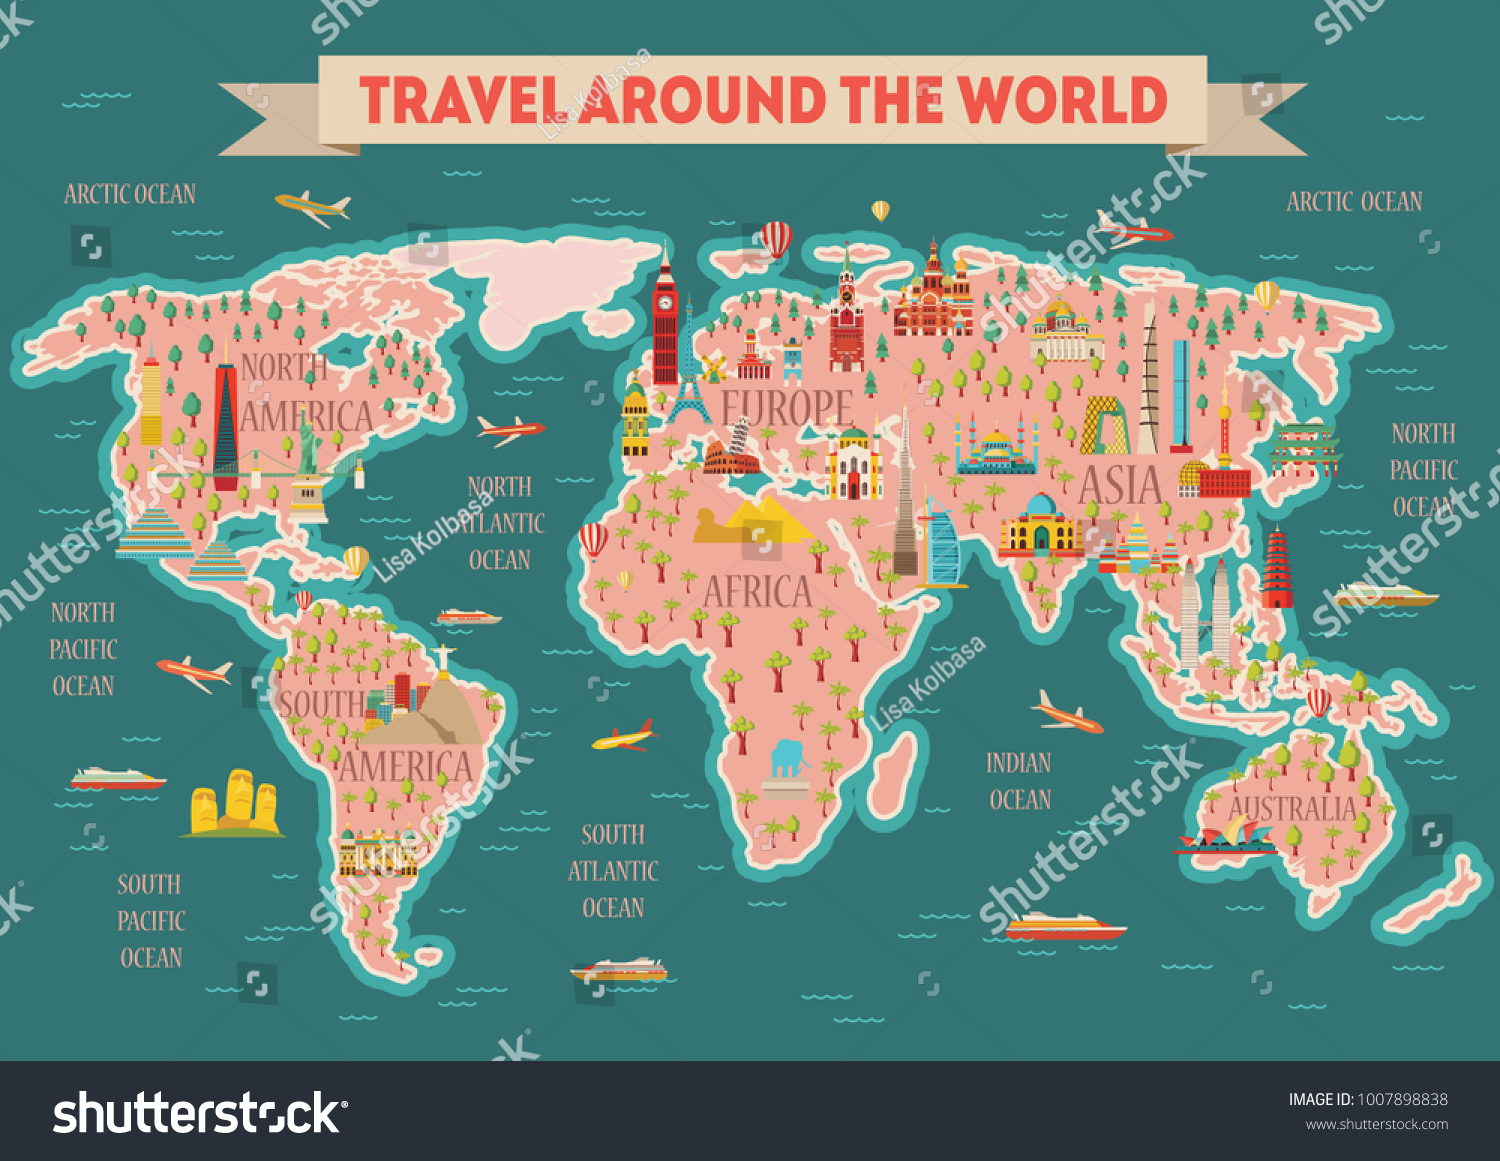 World travel map poster travel tourism stock vector hd royalty free world travel map poster travel and tourism background vector illustration publicscrutiny Image collections